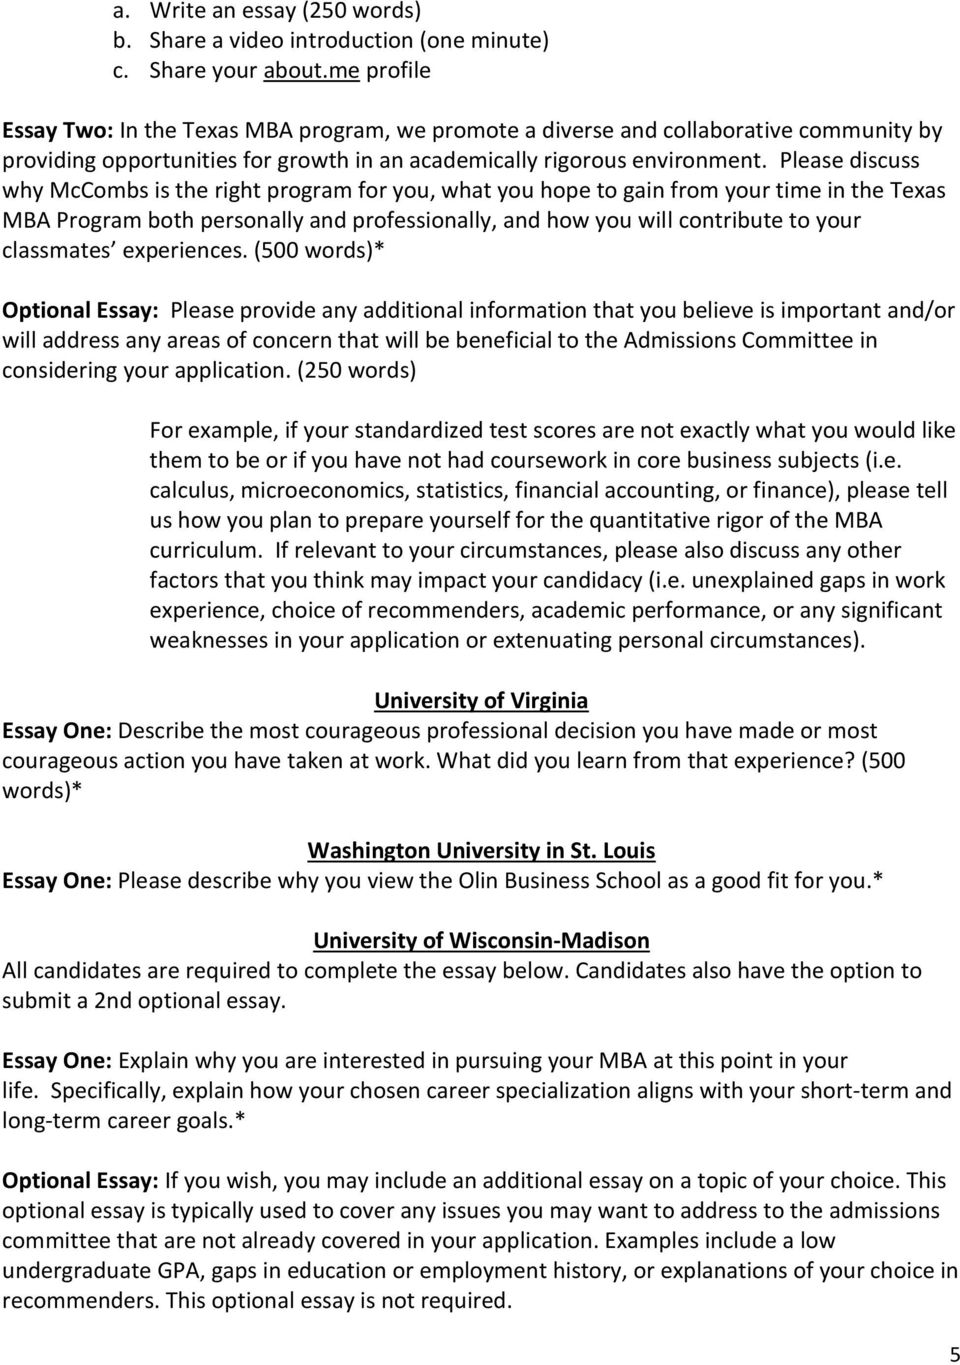 University Of Wisconsin Admissions Essay 2012